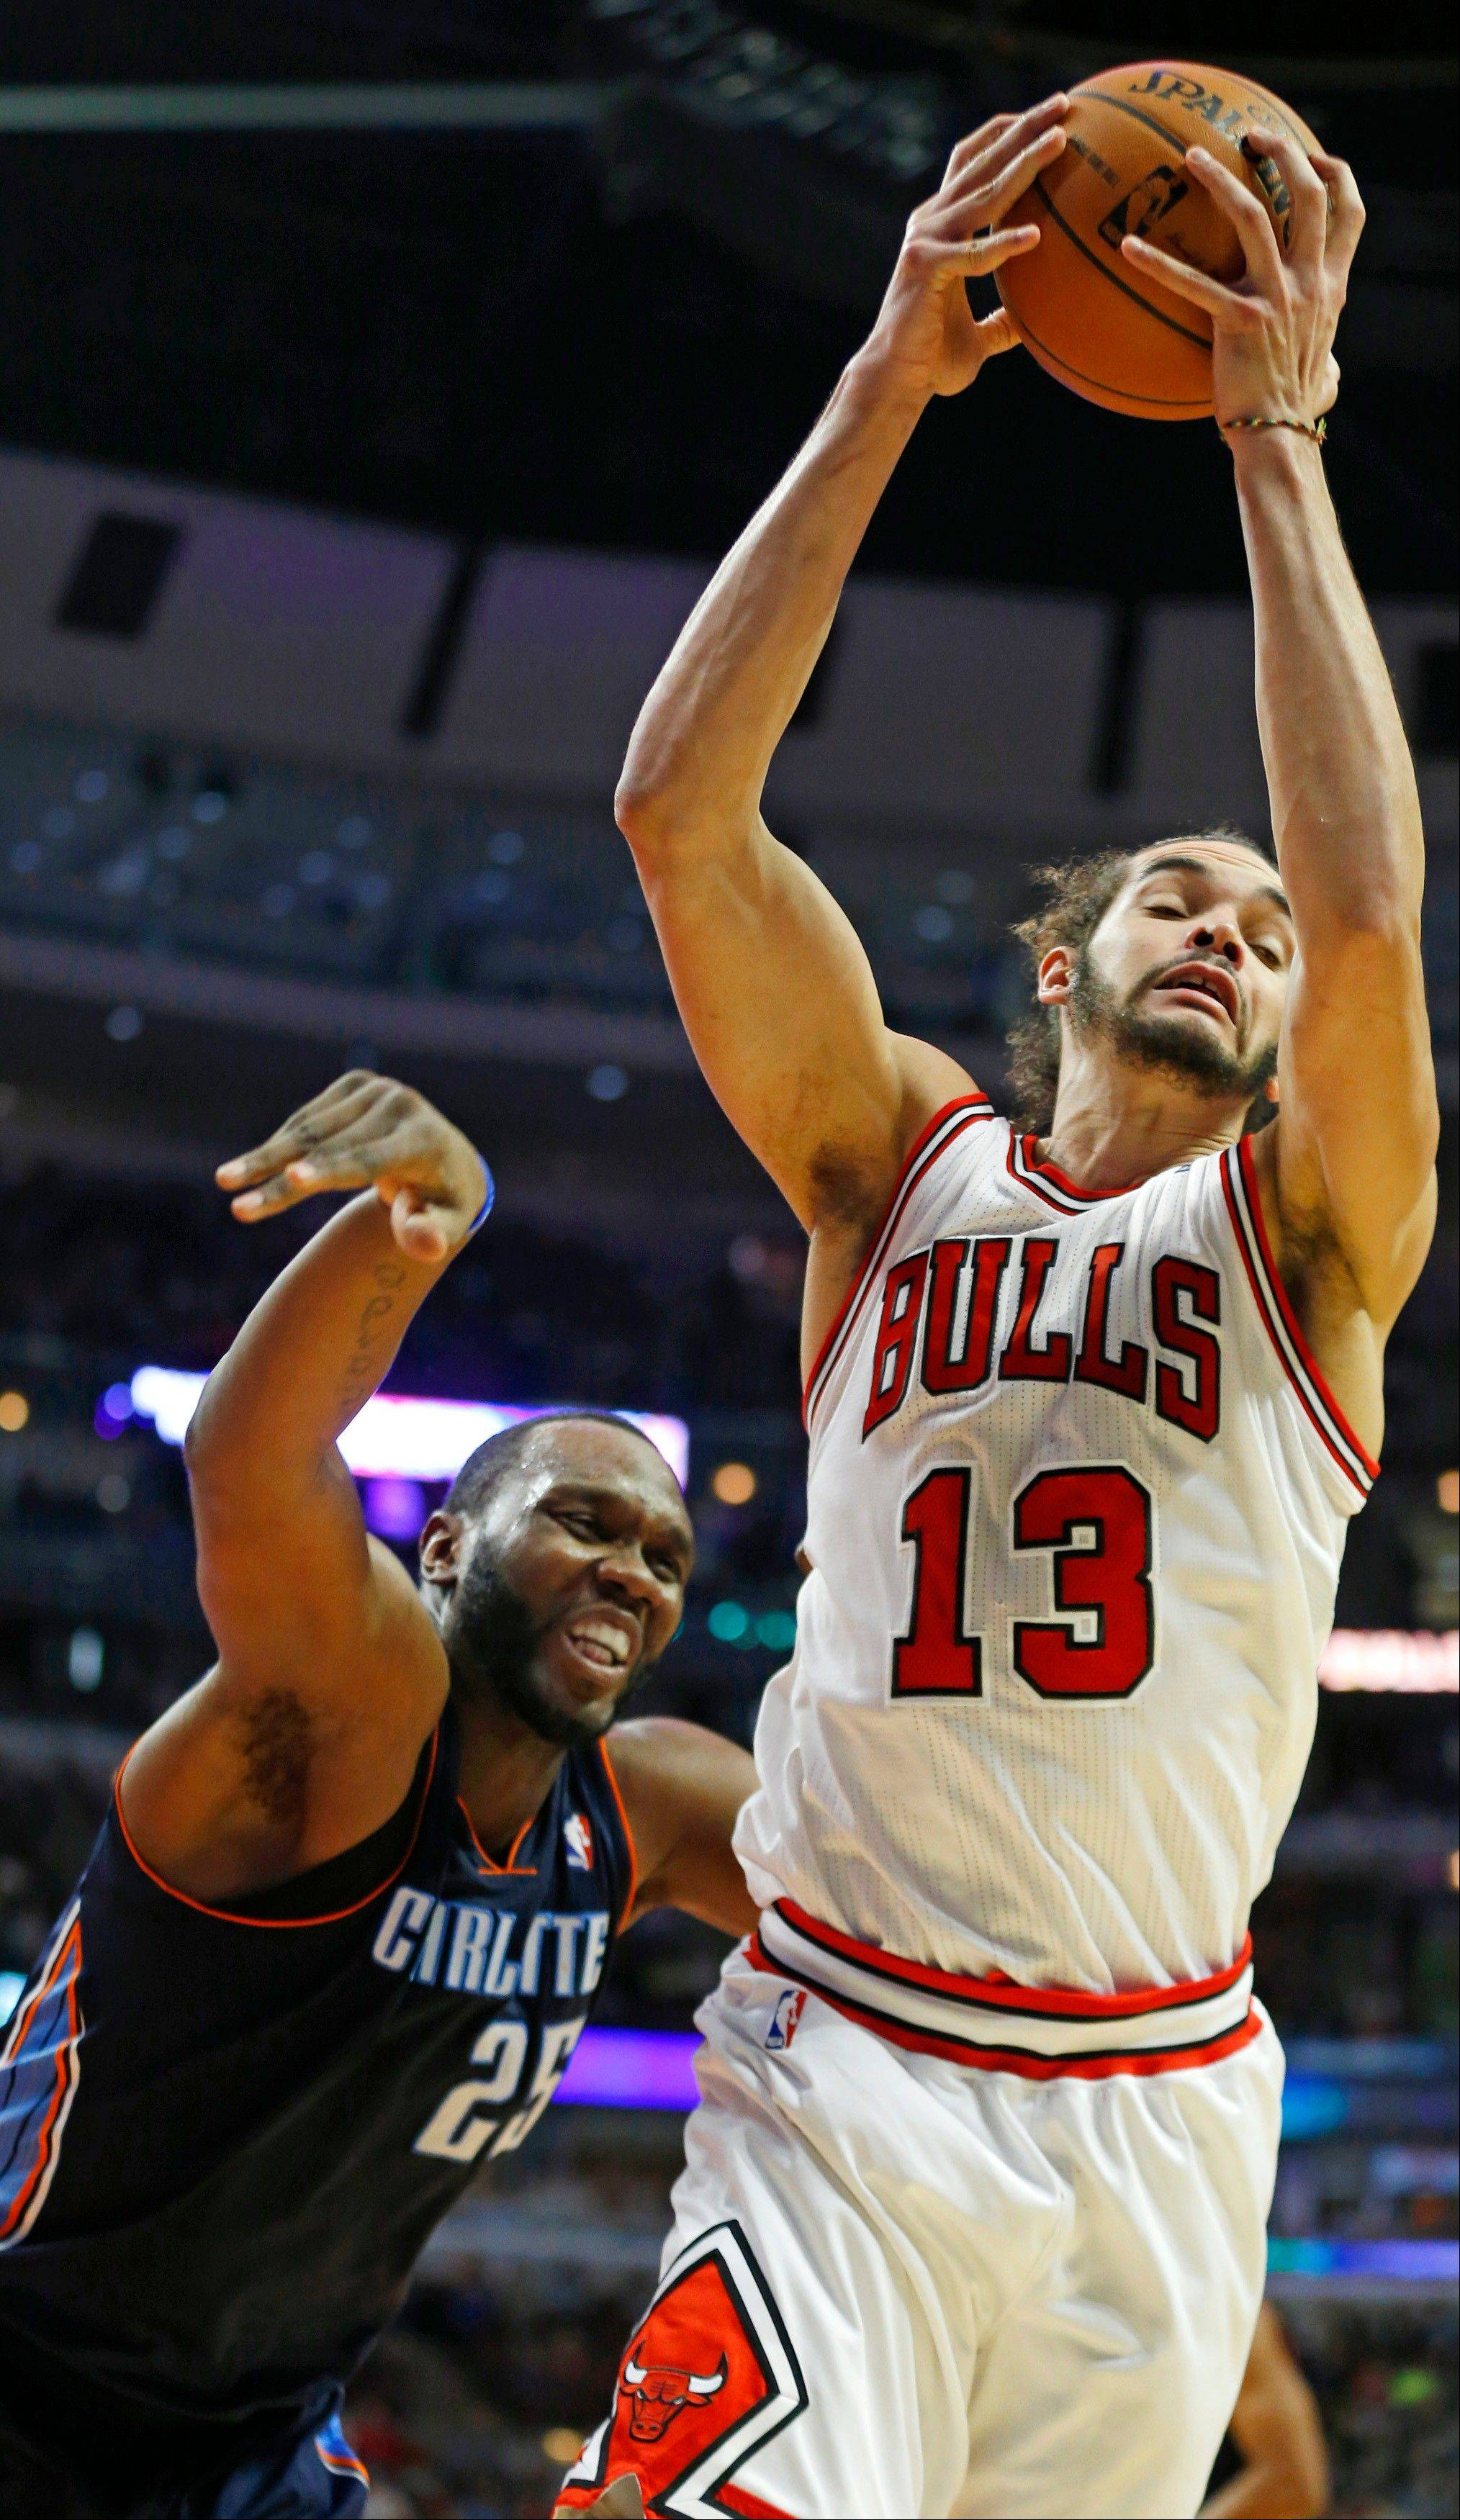 Chicago Bulls center Joakim Noah (13) rebounds the ball away from Charlotte Bobcats center Al Jefferson (25) Saturday night at the United Center. The Bulls won 103-97.